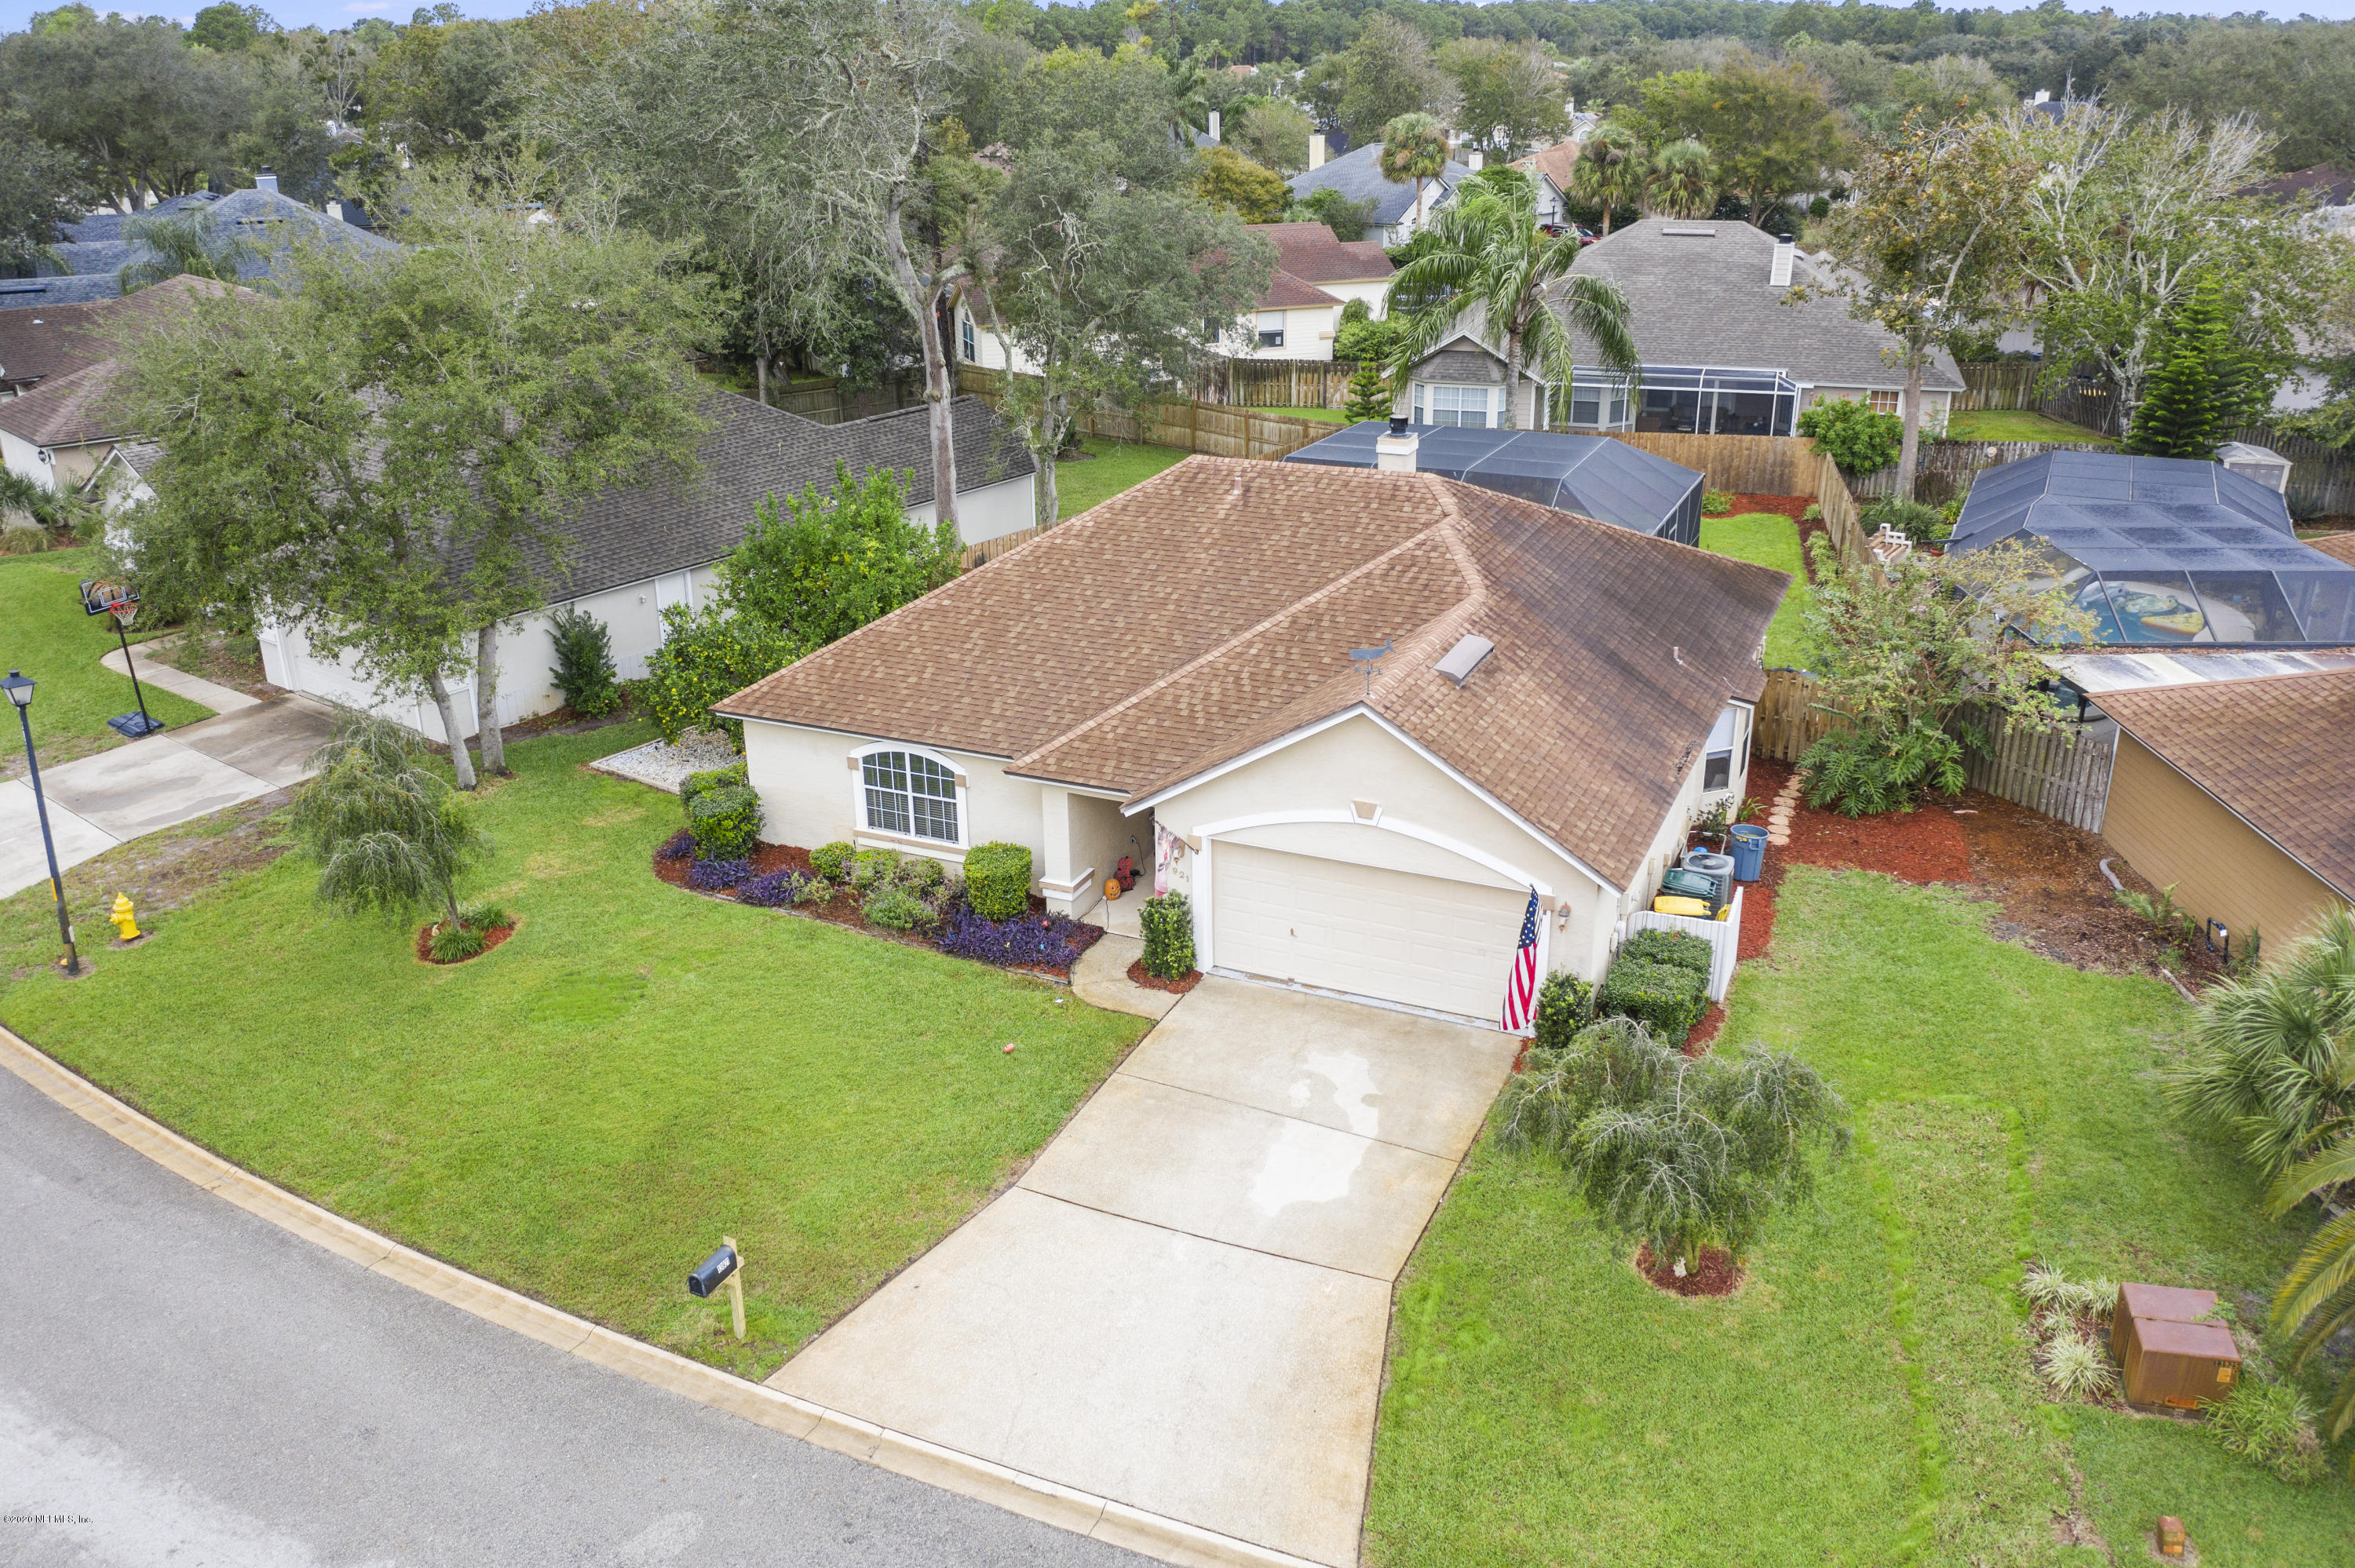 13921 INTRACOASTAL SOUND, JACKSONVILLE, FLORIDA 32224, 3 Bedrooms Bedrooms, ,2 BathroomsBathrooms,Residential,For sale,INTRACOASTAL SOUND,1080228